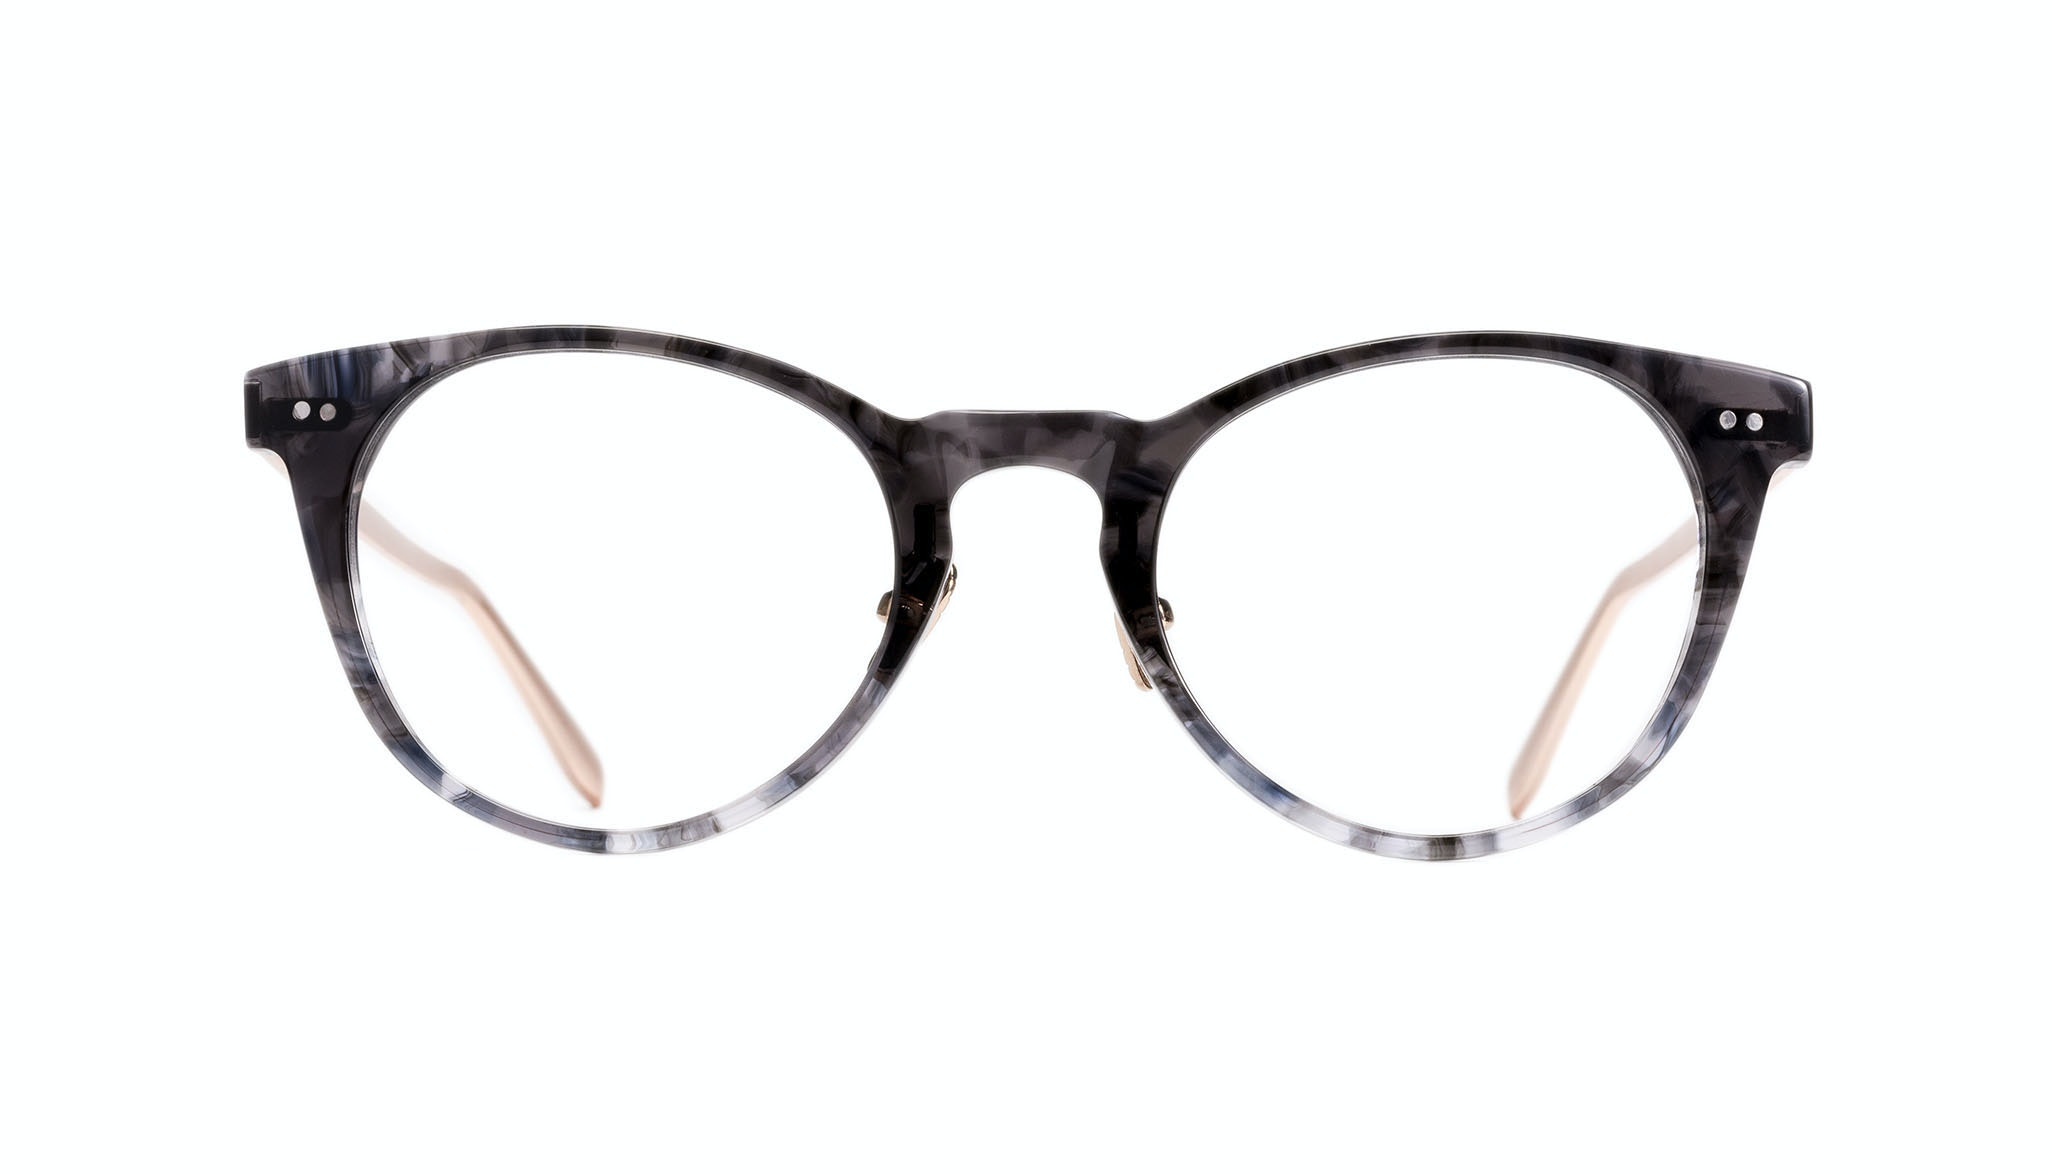 Affordable Fashion Glasses Round Eyeglasses Women Luv Dark Night